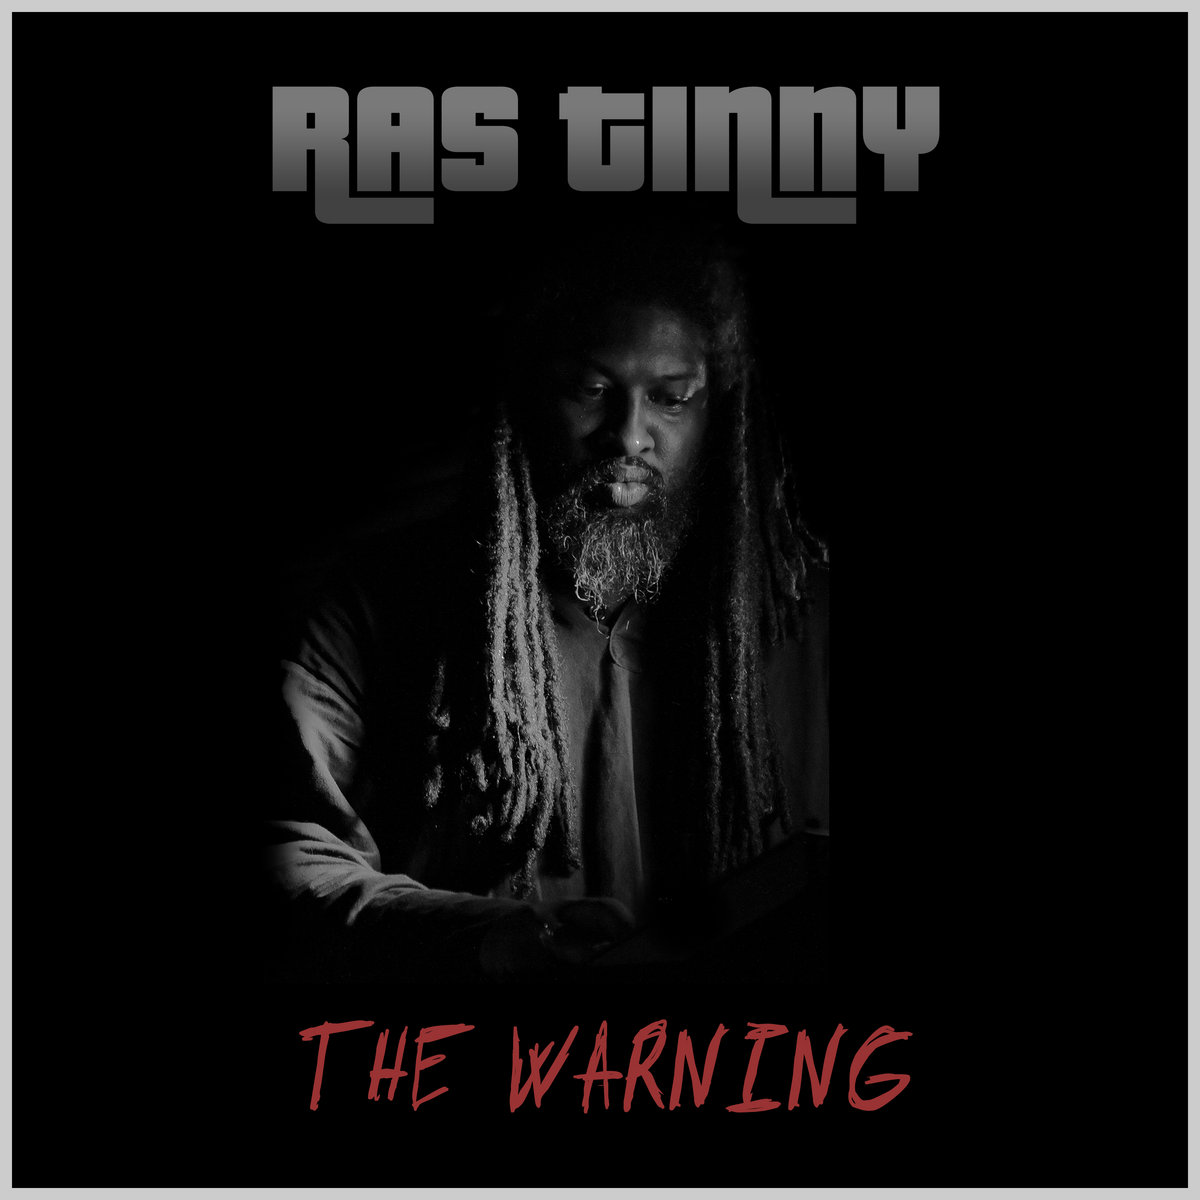 From The Warning By Ras Tinny